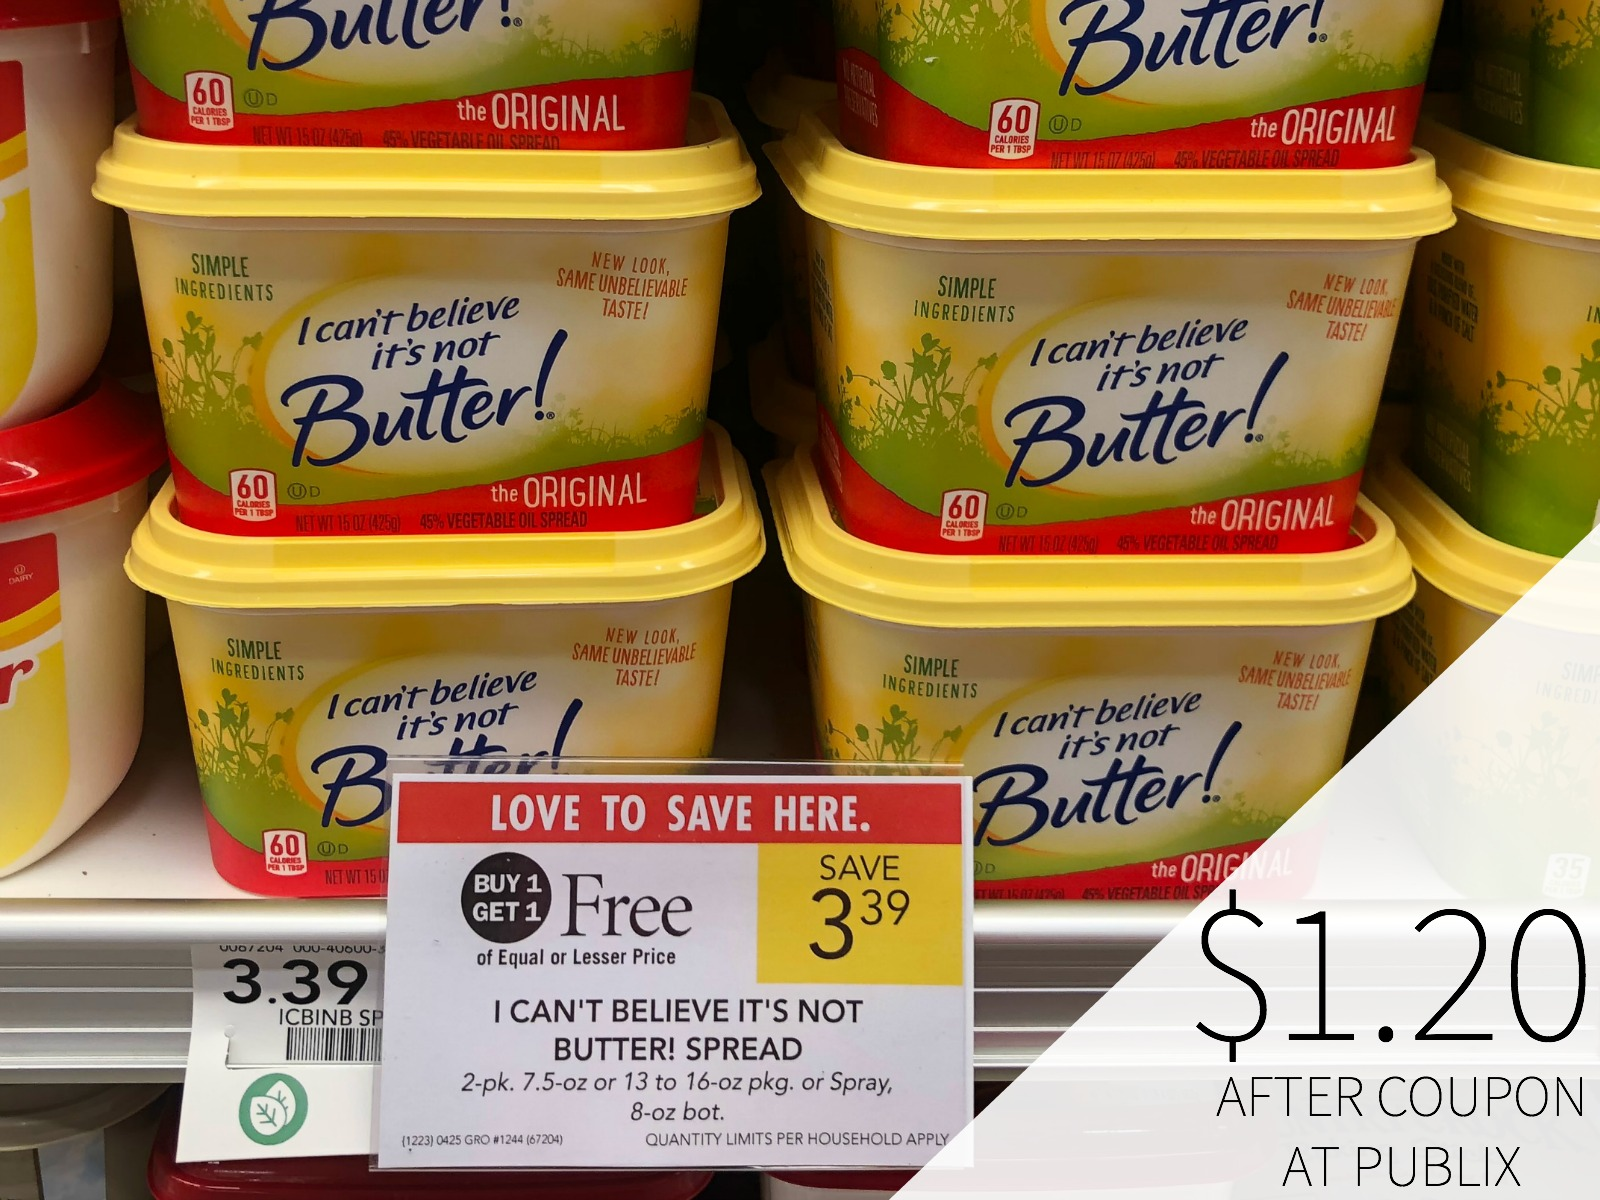 Get I Can't Believe It's Not Butter!® As Low As $1.20 This Week At Publix on I Heart Publix